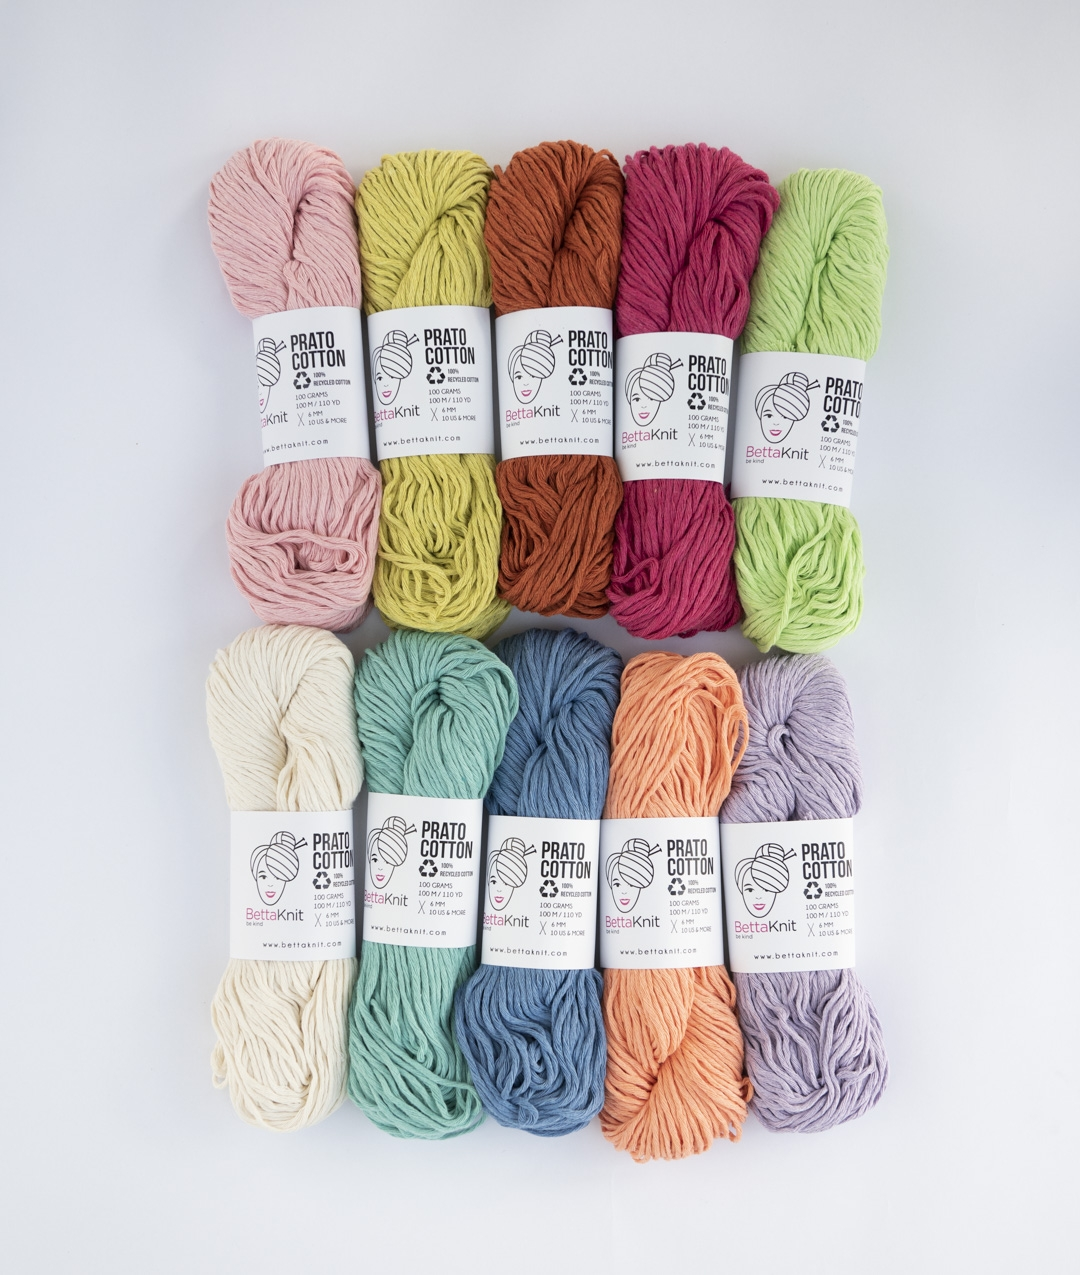 Pack of Yarn - Prato Cotton Pack - 10 balls - 1